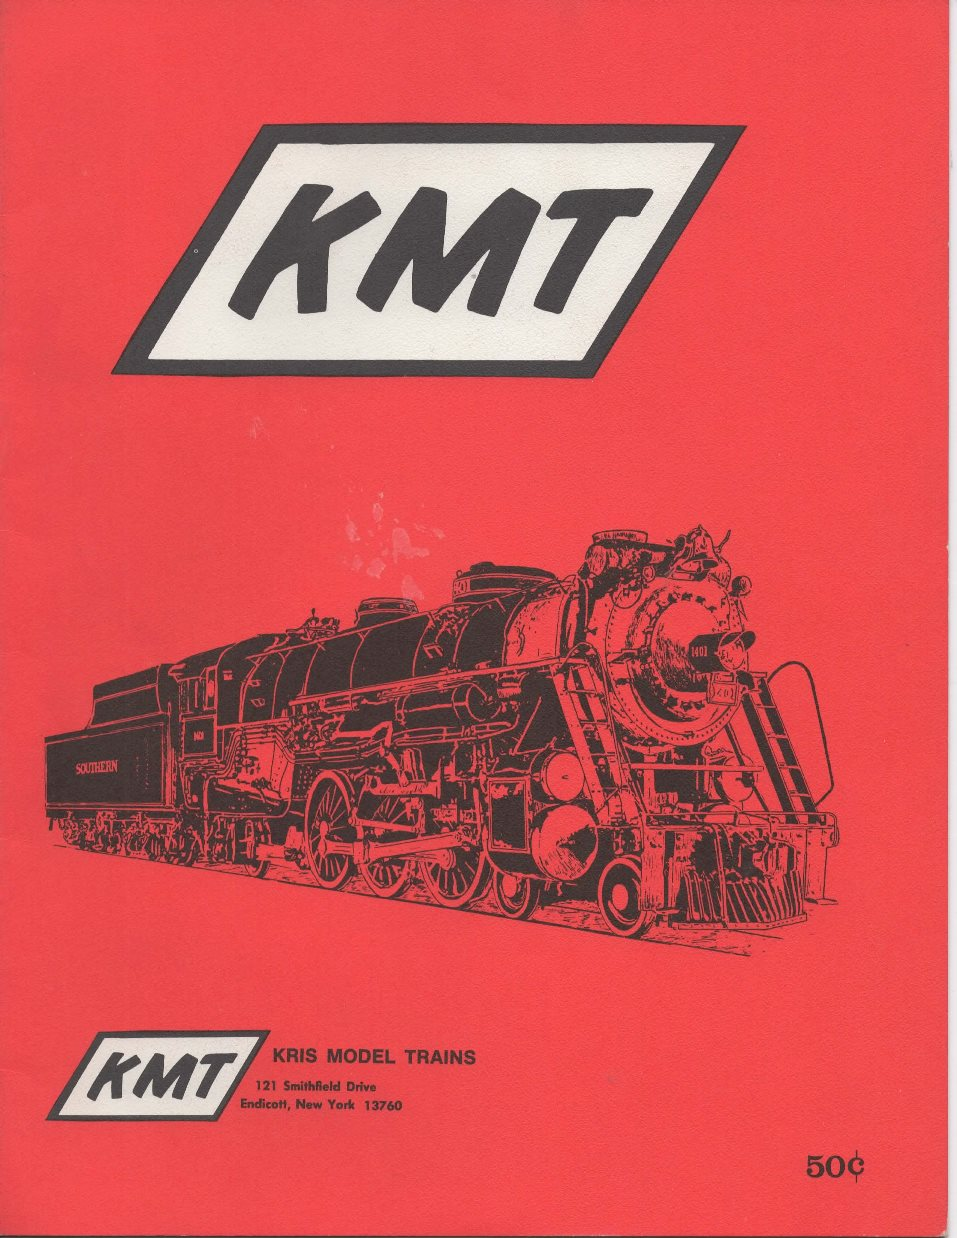 Kris Model Trains 1969 catalog front cover